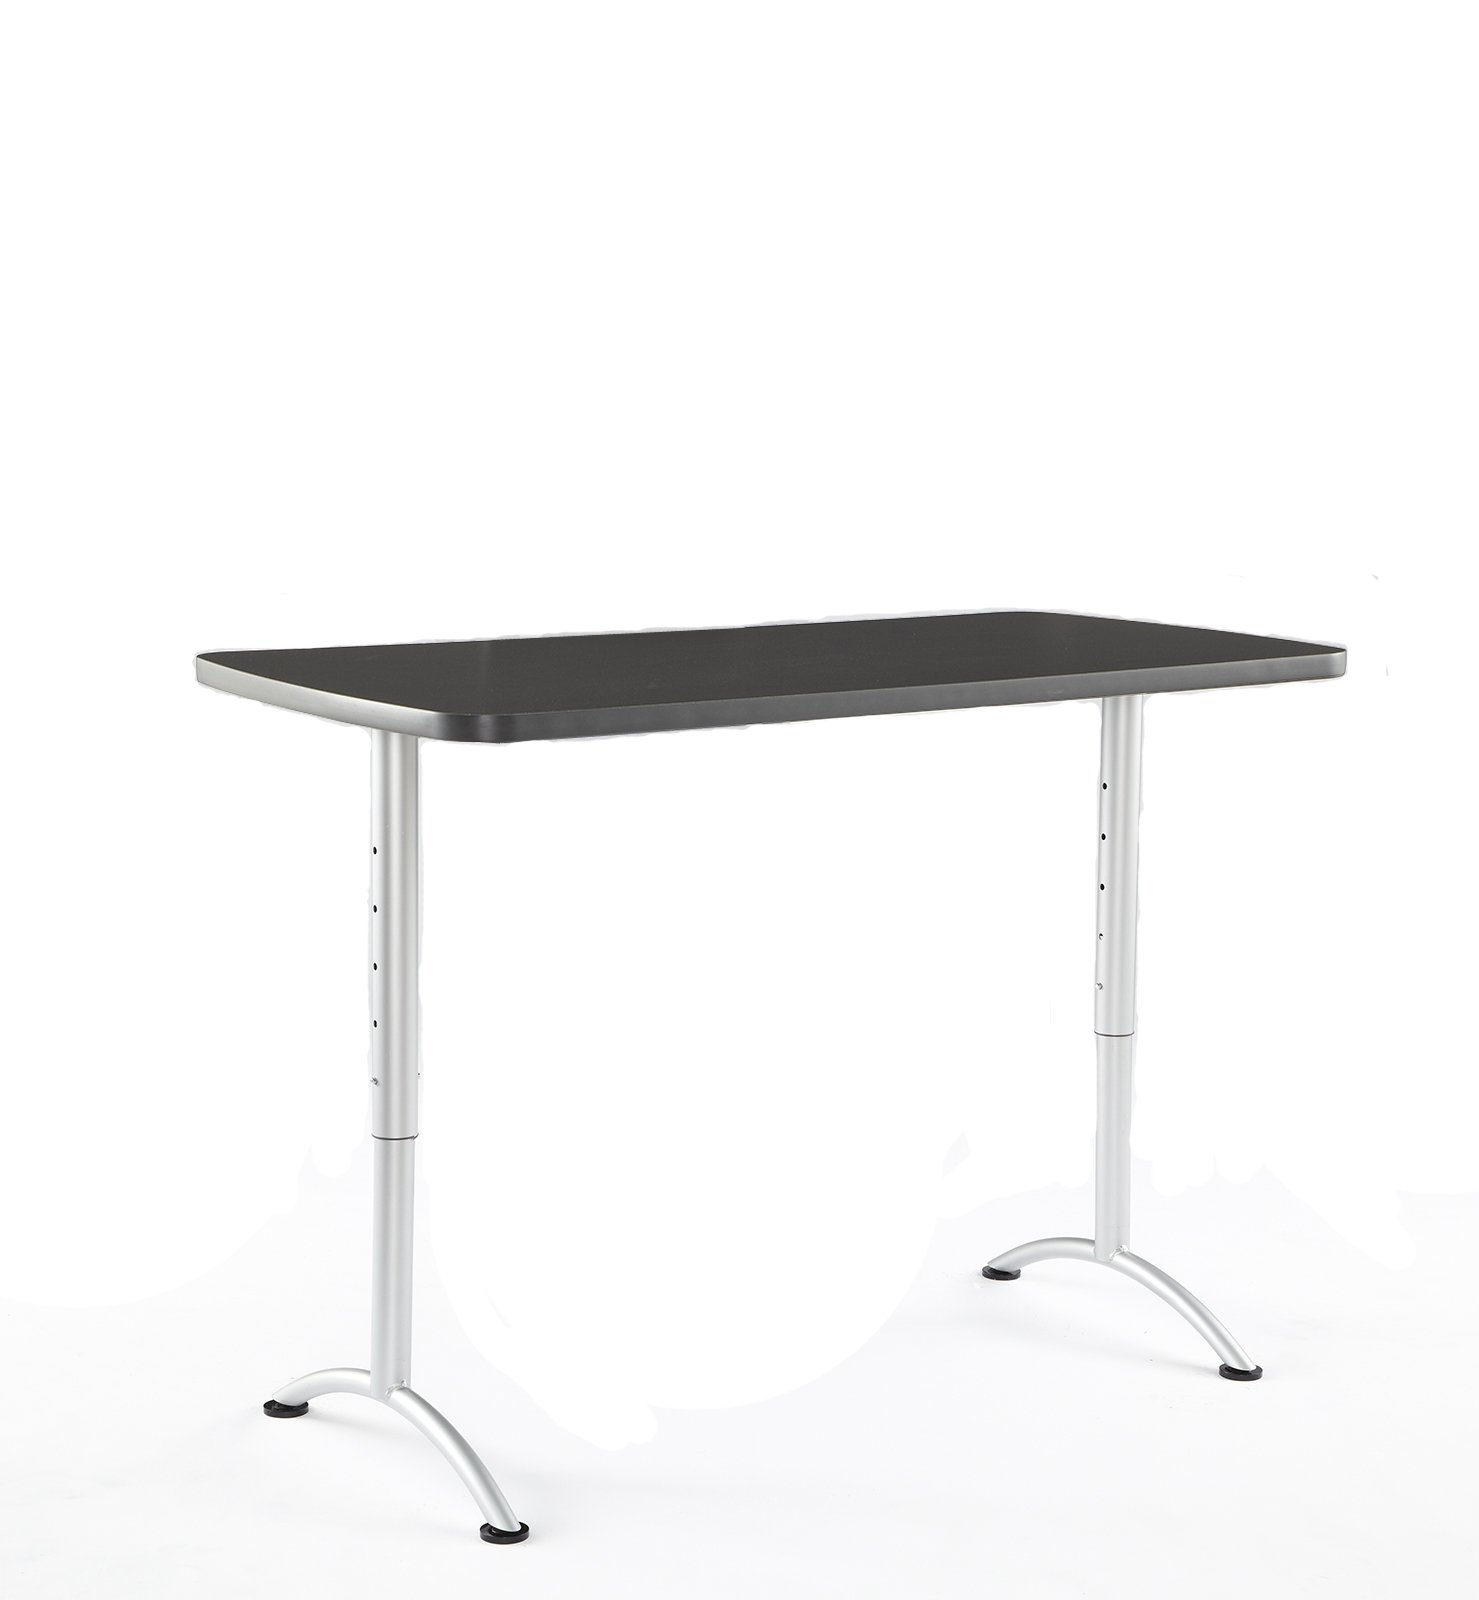 Iceberg ICE69317 ARC 5-foot Adjustable Height Rectangular Conference Table, 30'' x 60'', Graphite/Silver Leg